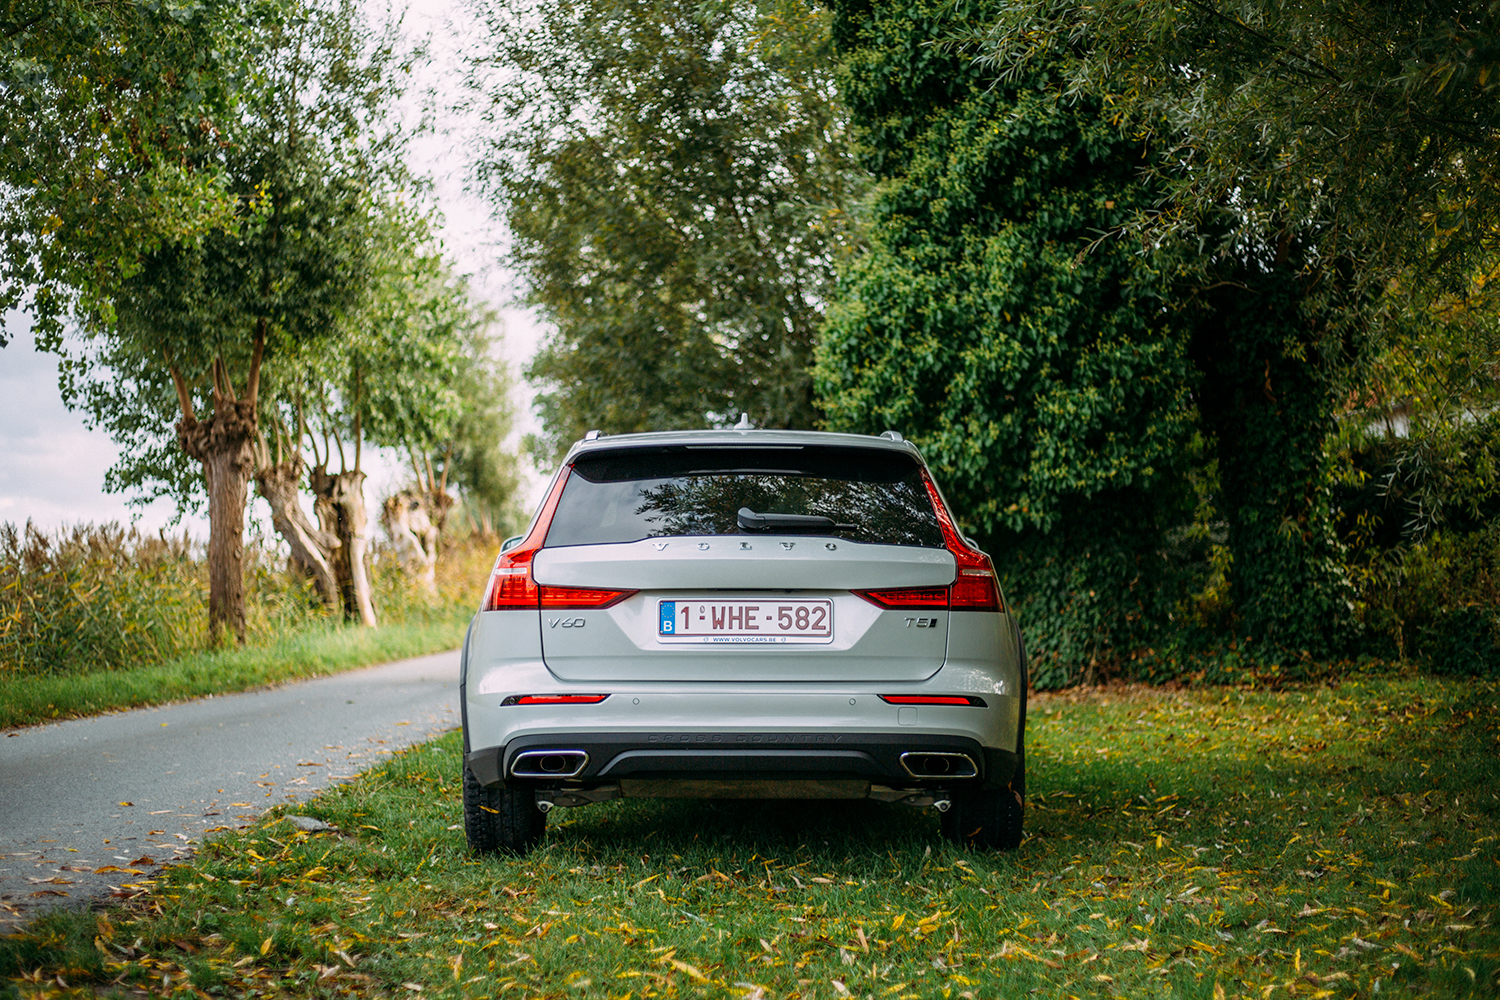 Volvo - V60 Cross country - Zwin - Belgique